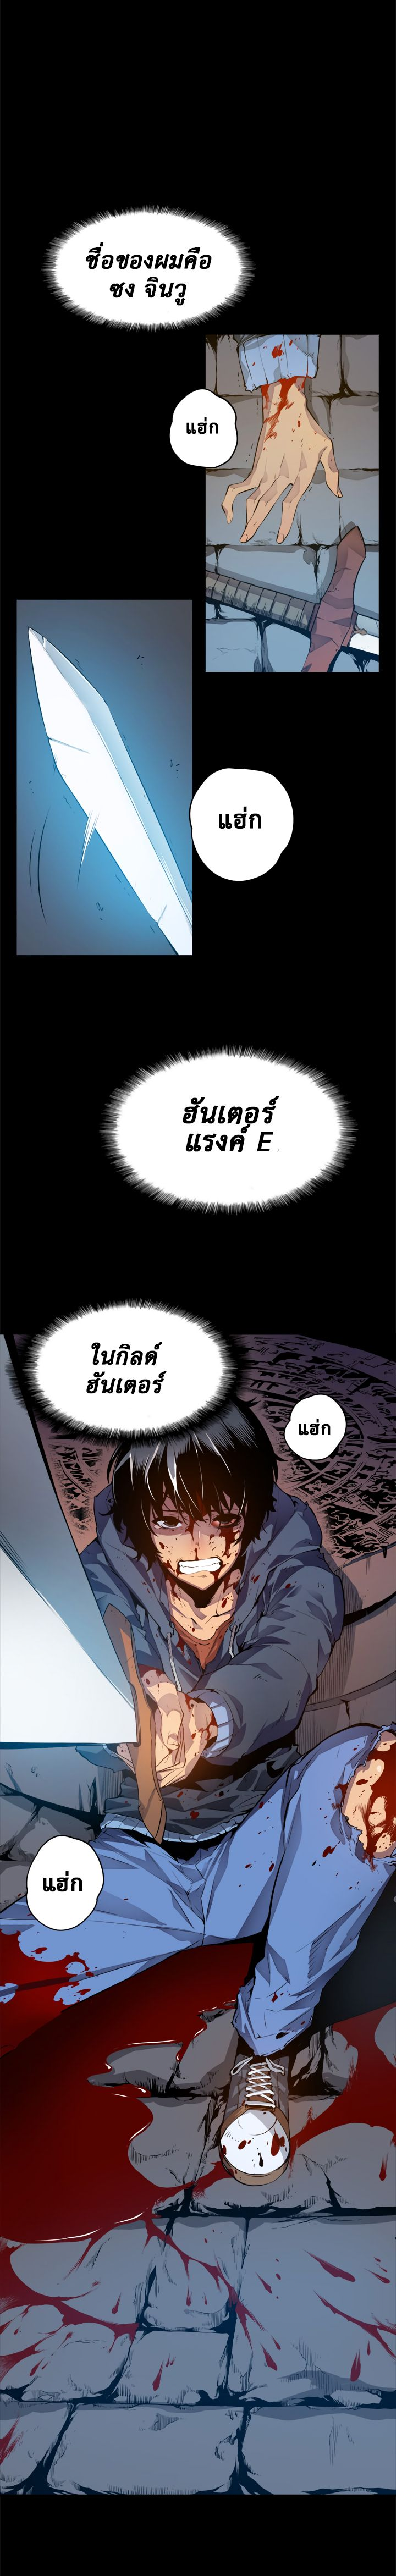 Solo Leveling - ตอนที่ 1